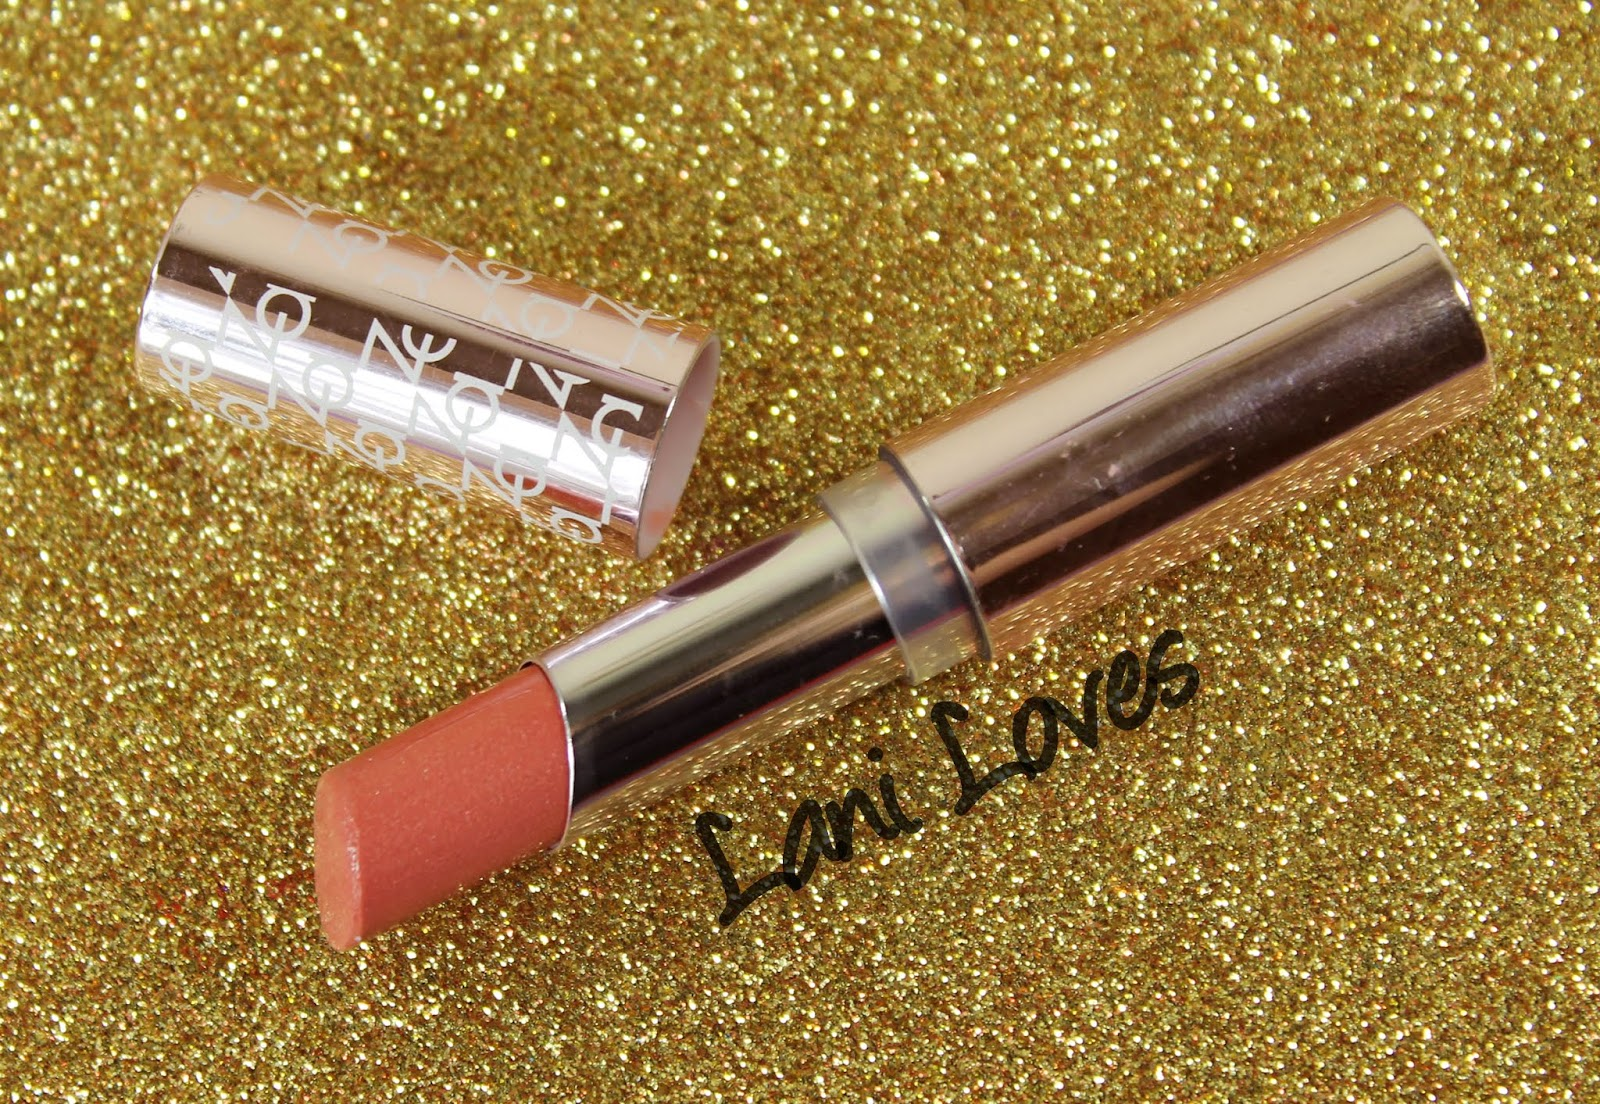 ZA Plumper Lips - 02 Rosy Flush lipstick swatches & review